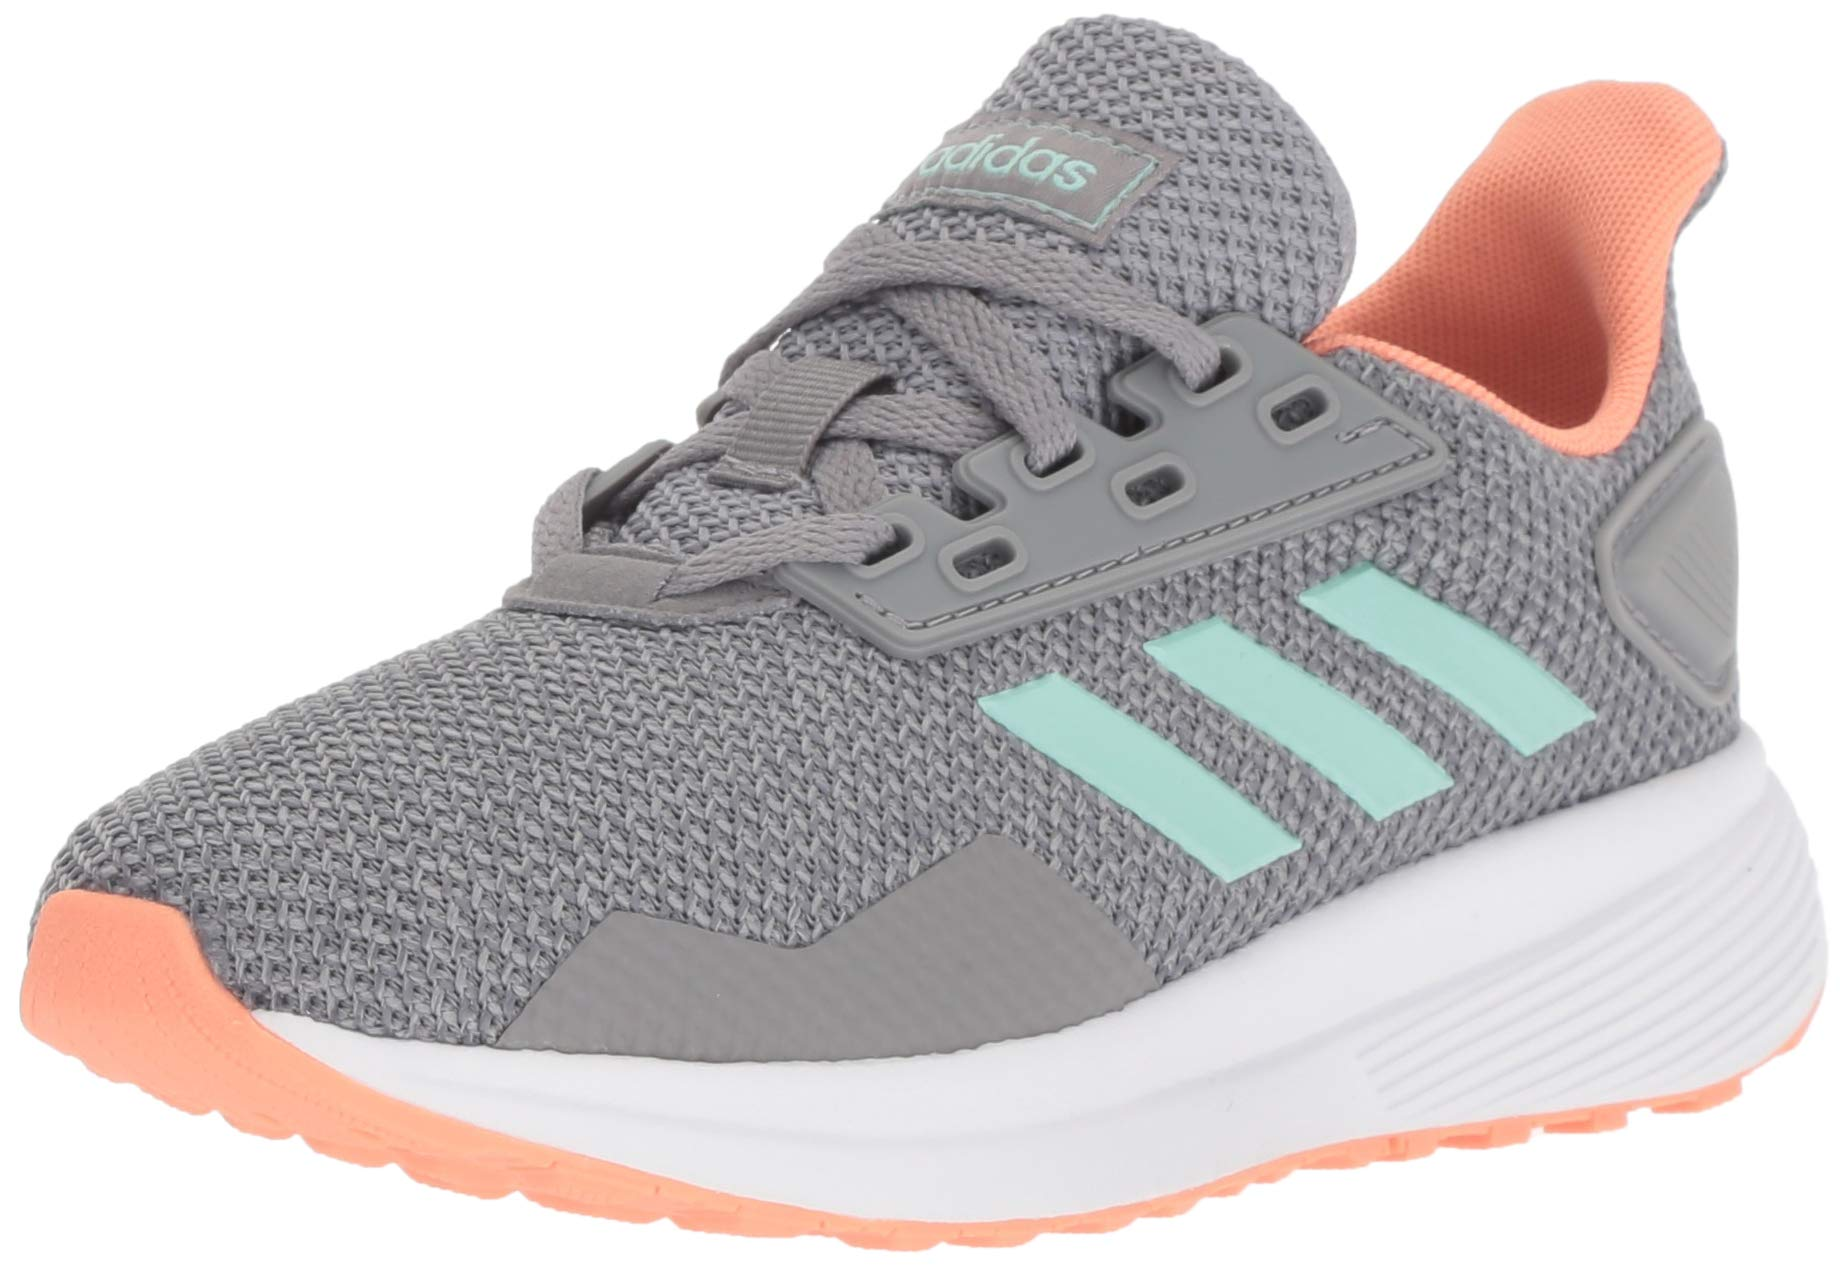 adidas Performance Unisex-Kids Duramo 9 Running Shoe, Grey Heather/Clear Mint/Granite, 6 M US Big Kid by adidas